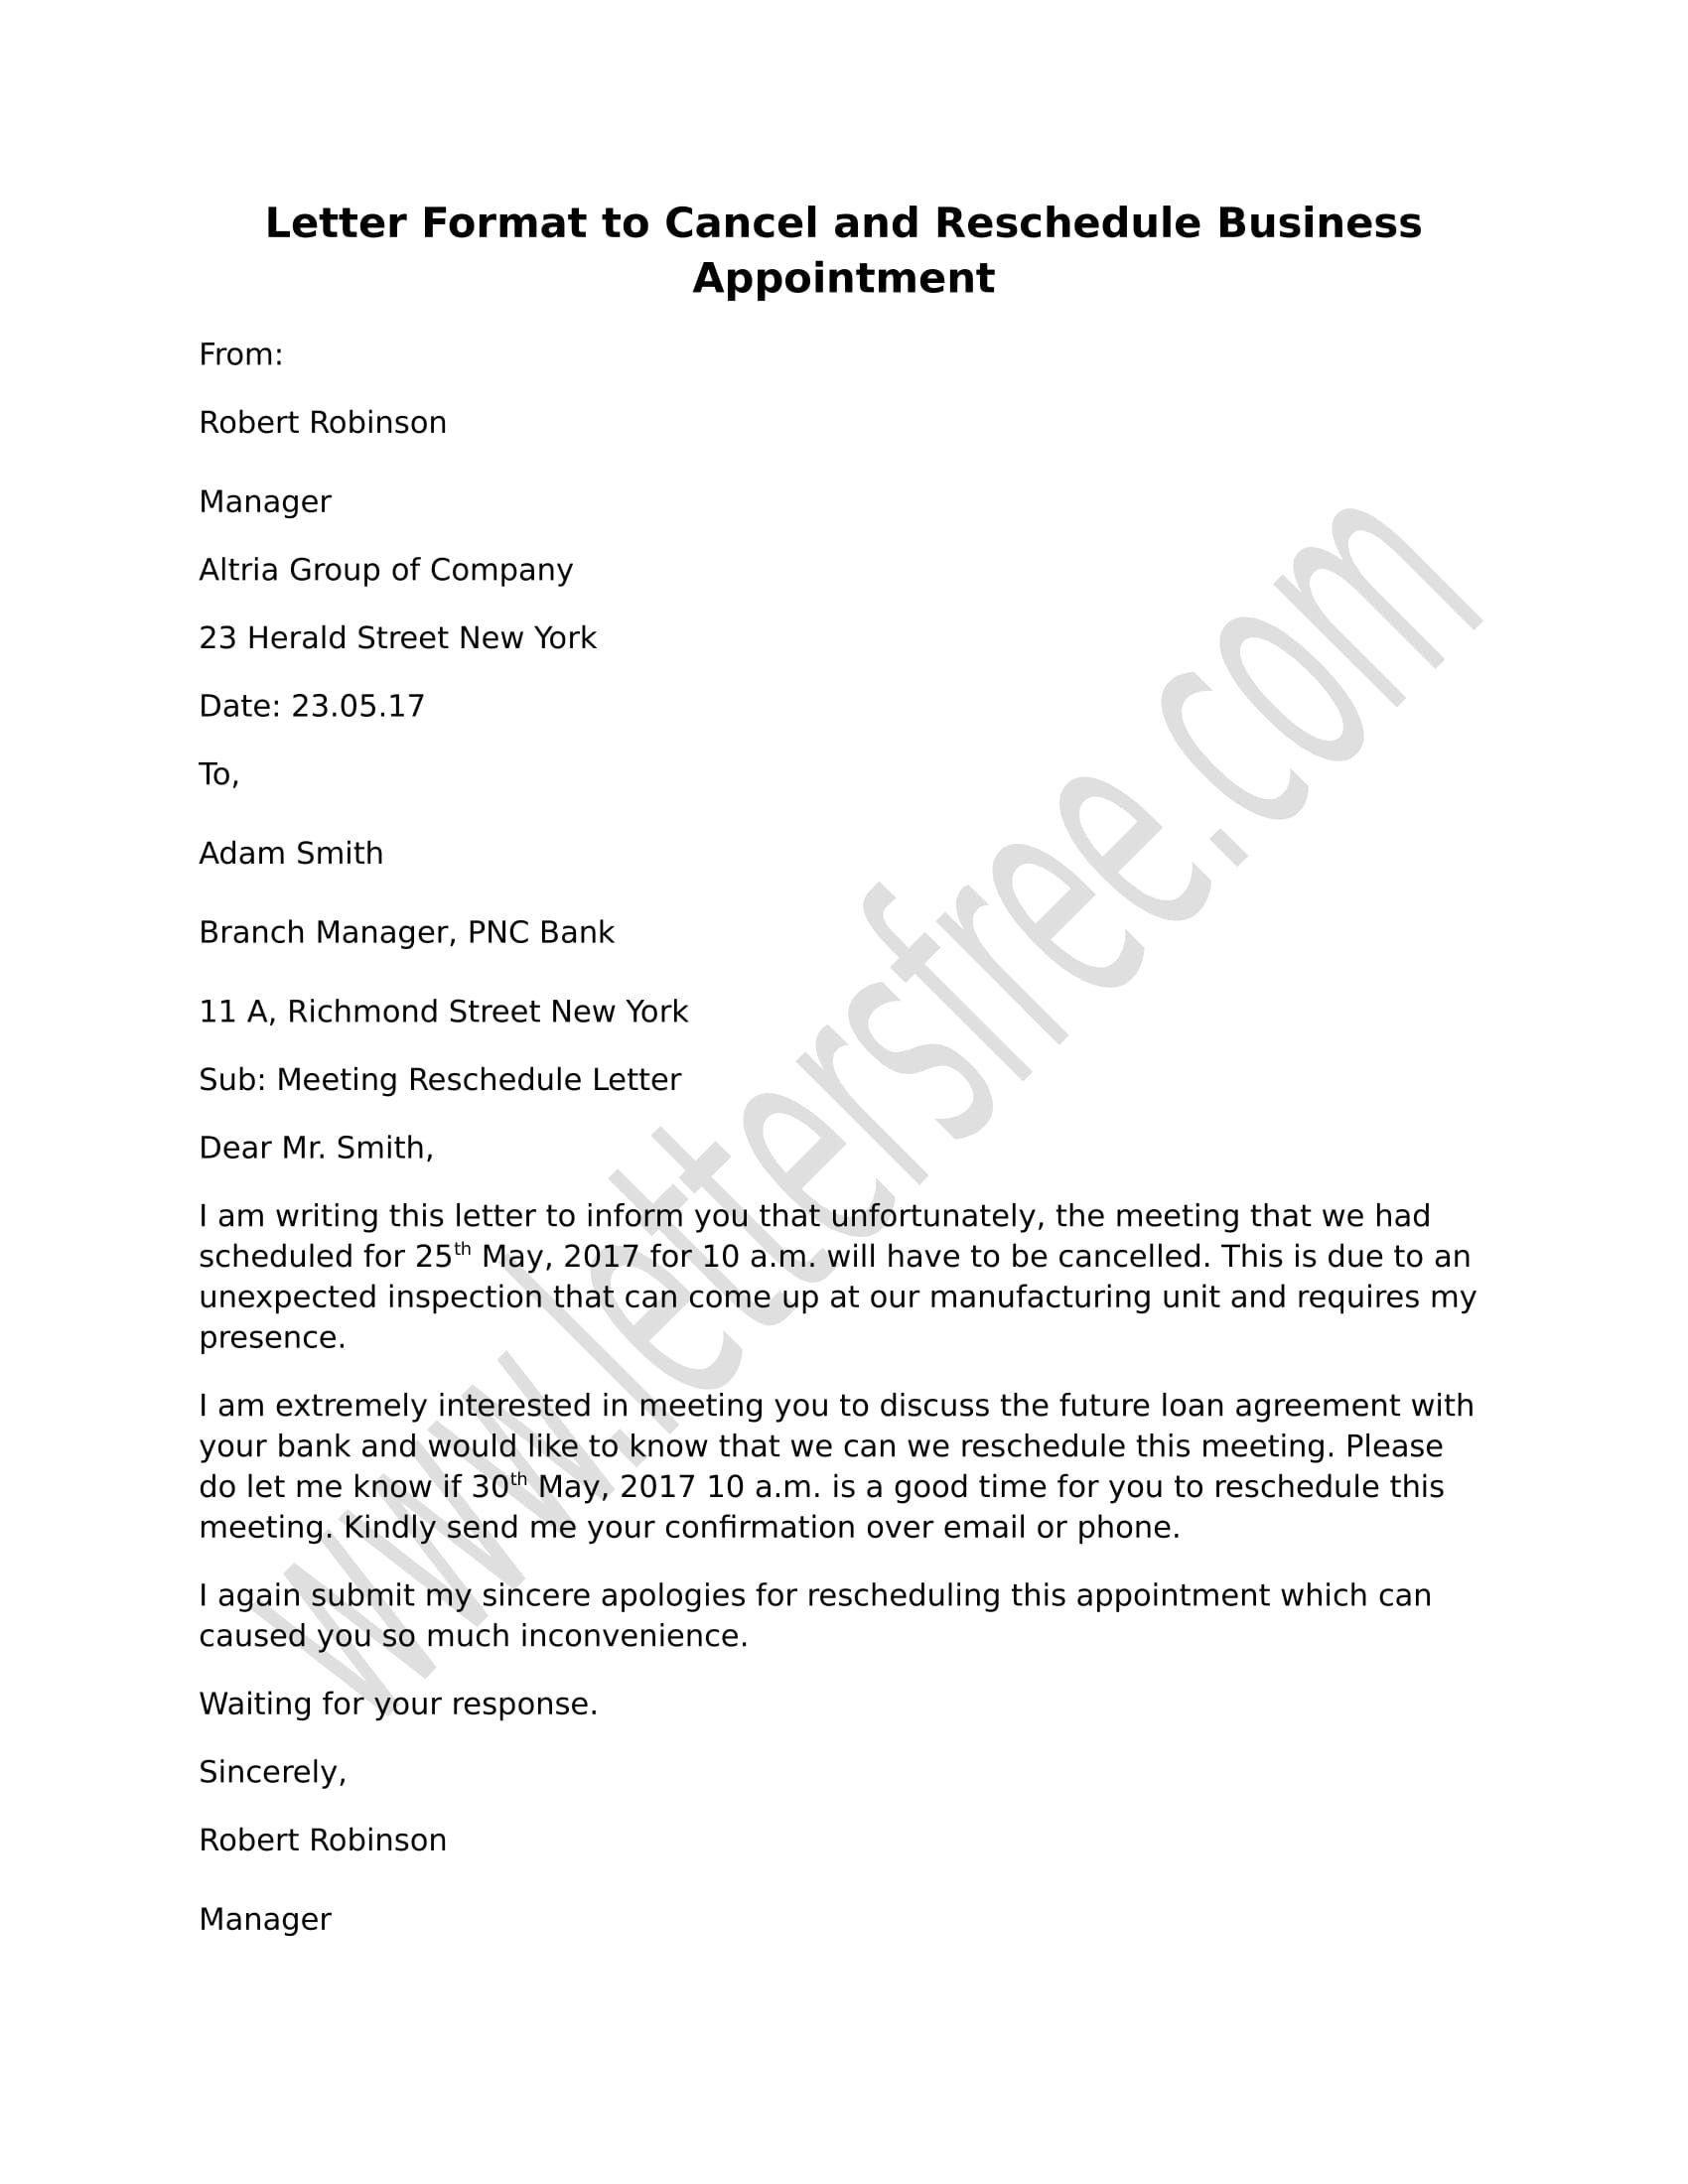 letter to cancel and reschedule business appointment appointment